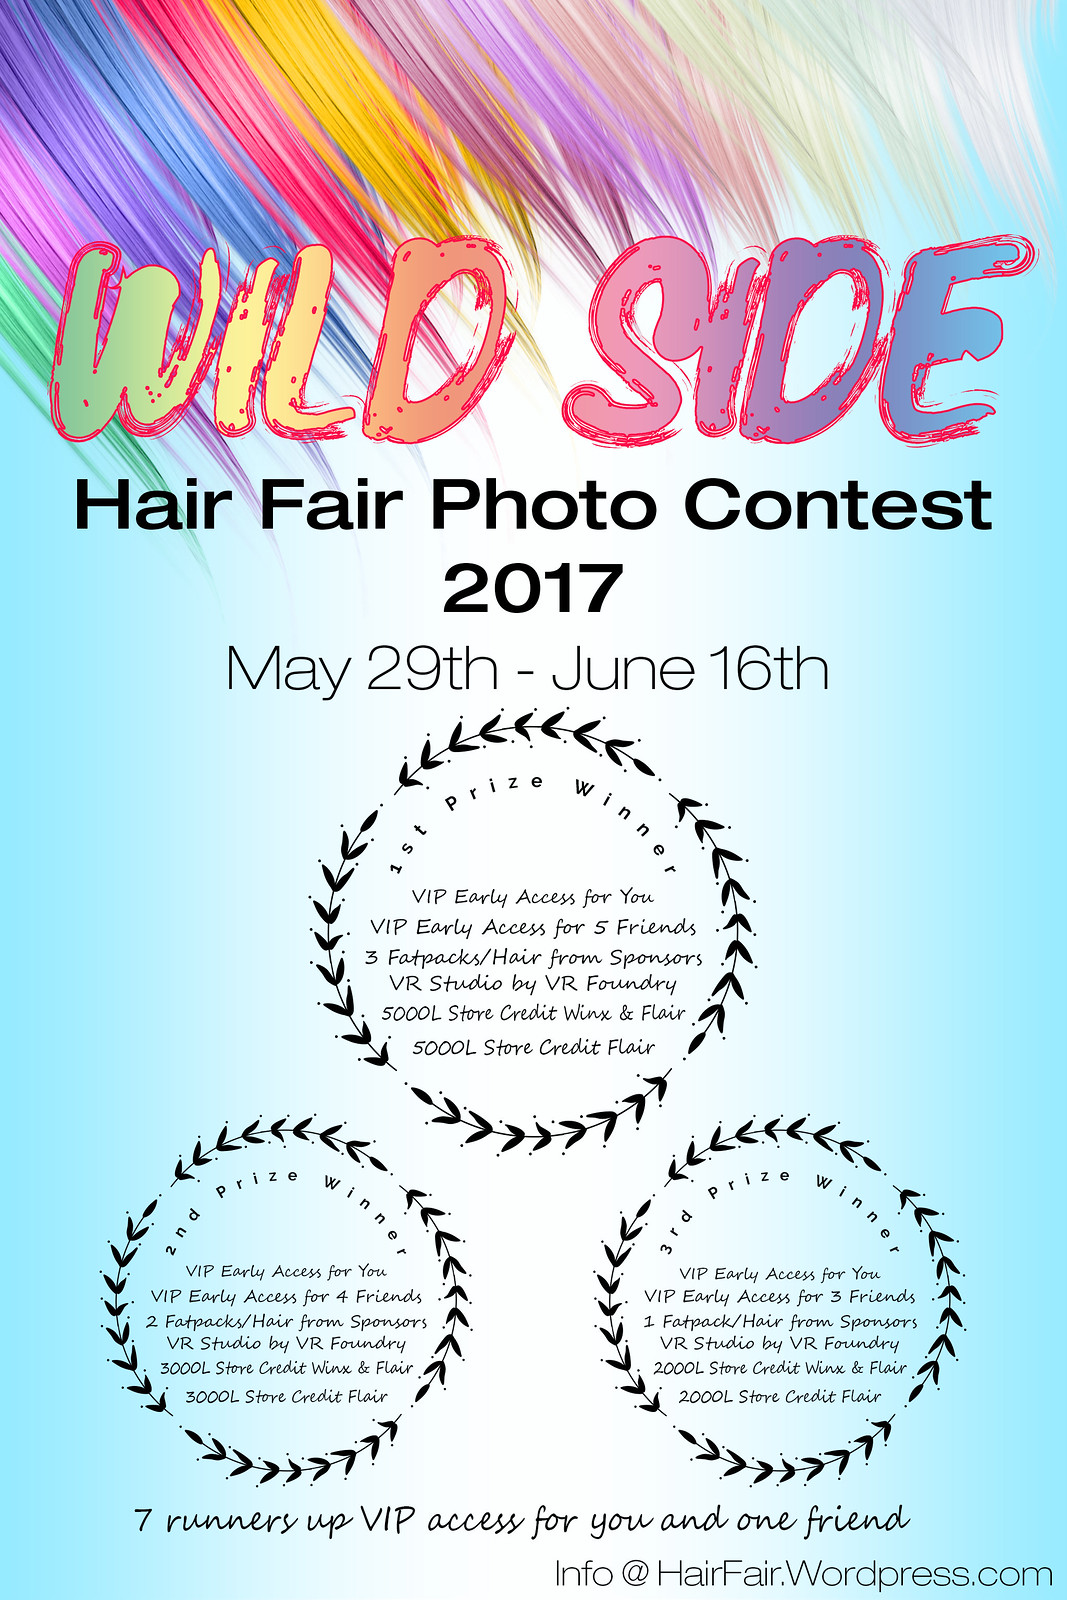 Hair Fair 2017 Photo Contest -  Wild Side